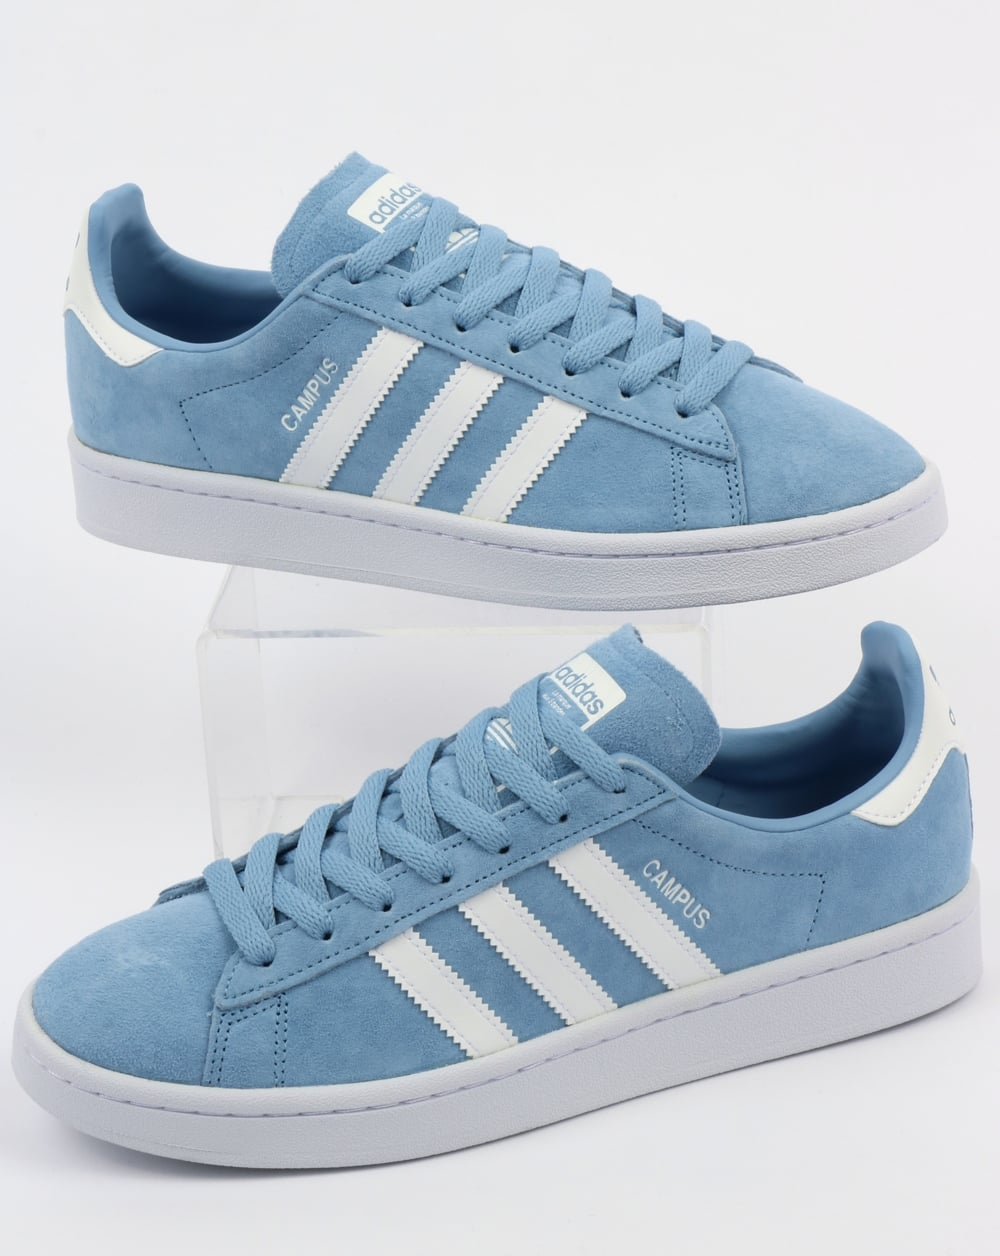 sports shoes 72620 5aa65 adidas Trainers Adidas Campus Trainers Sky Blue White